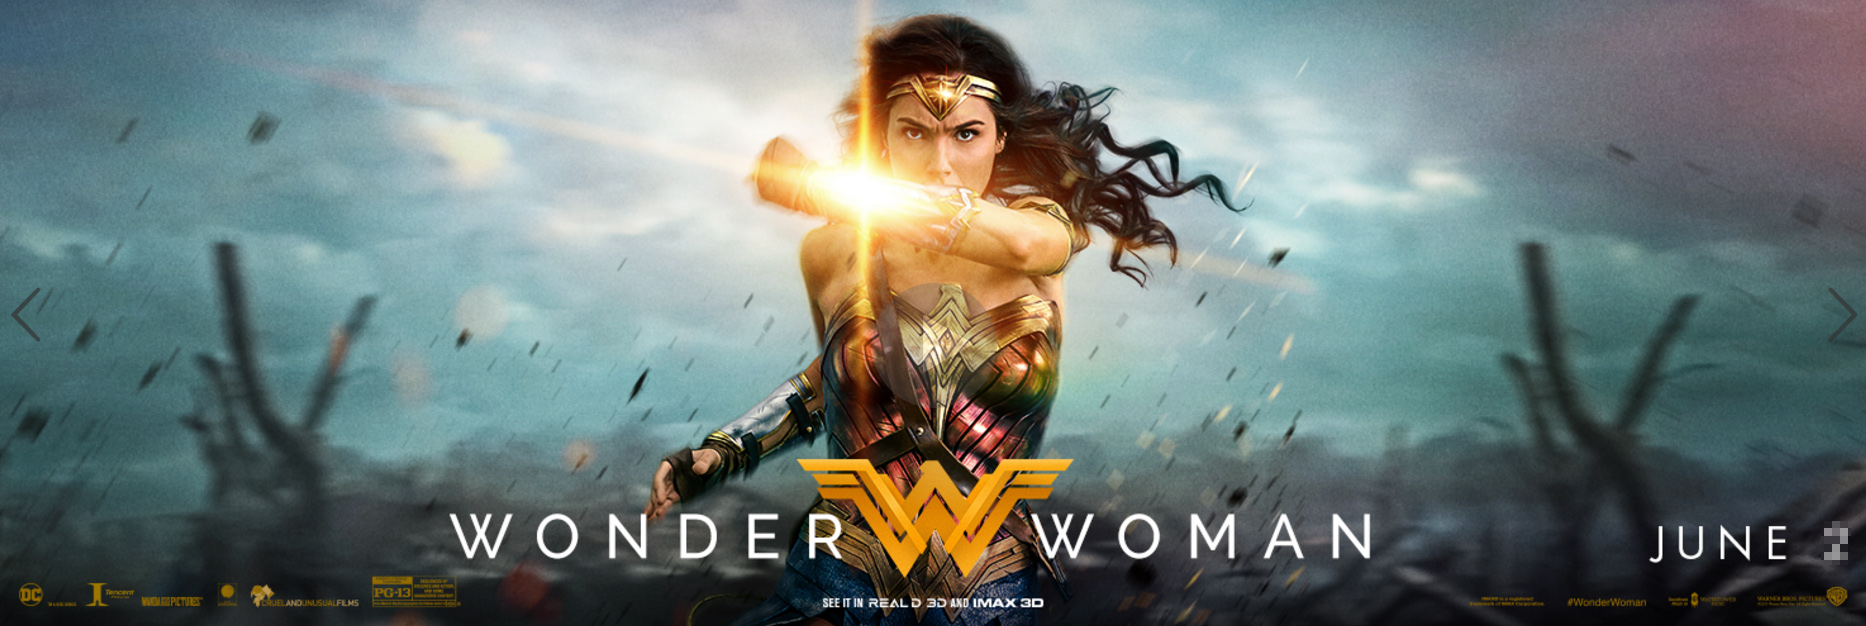 Wonder Woman Review: The Best Superhero Movie in DC Universe